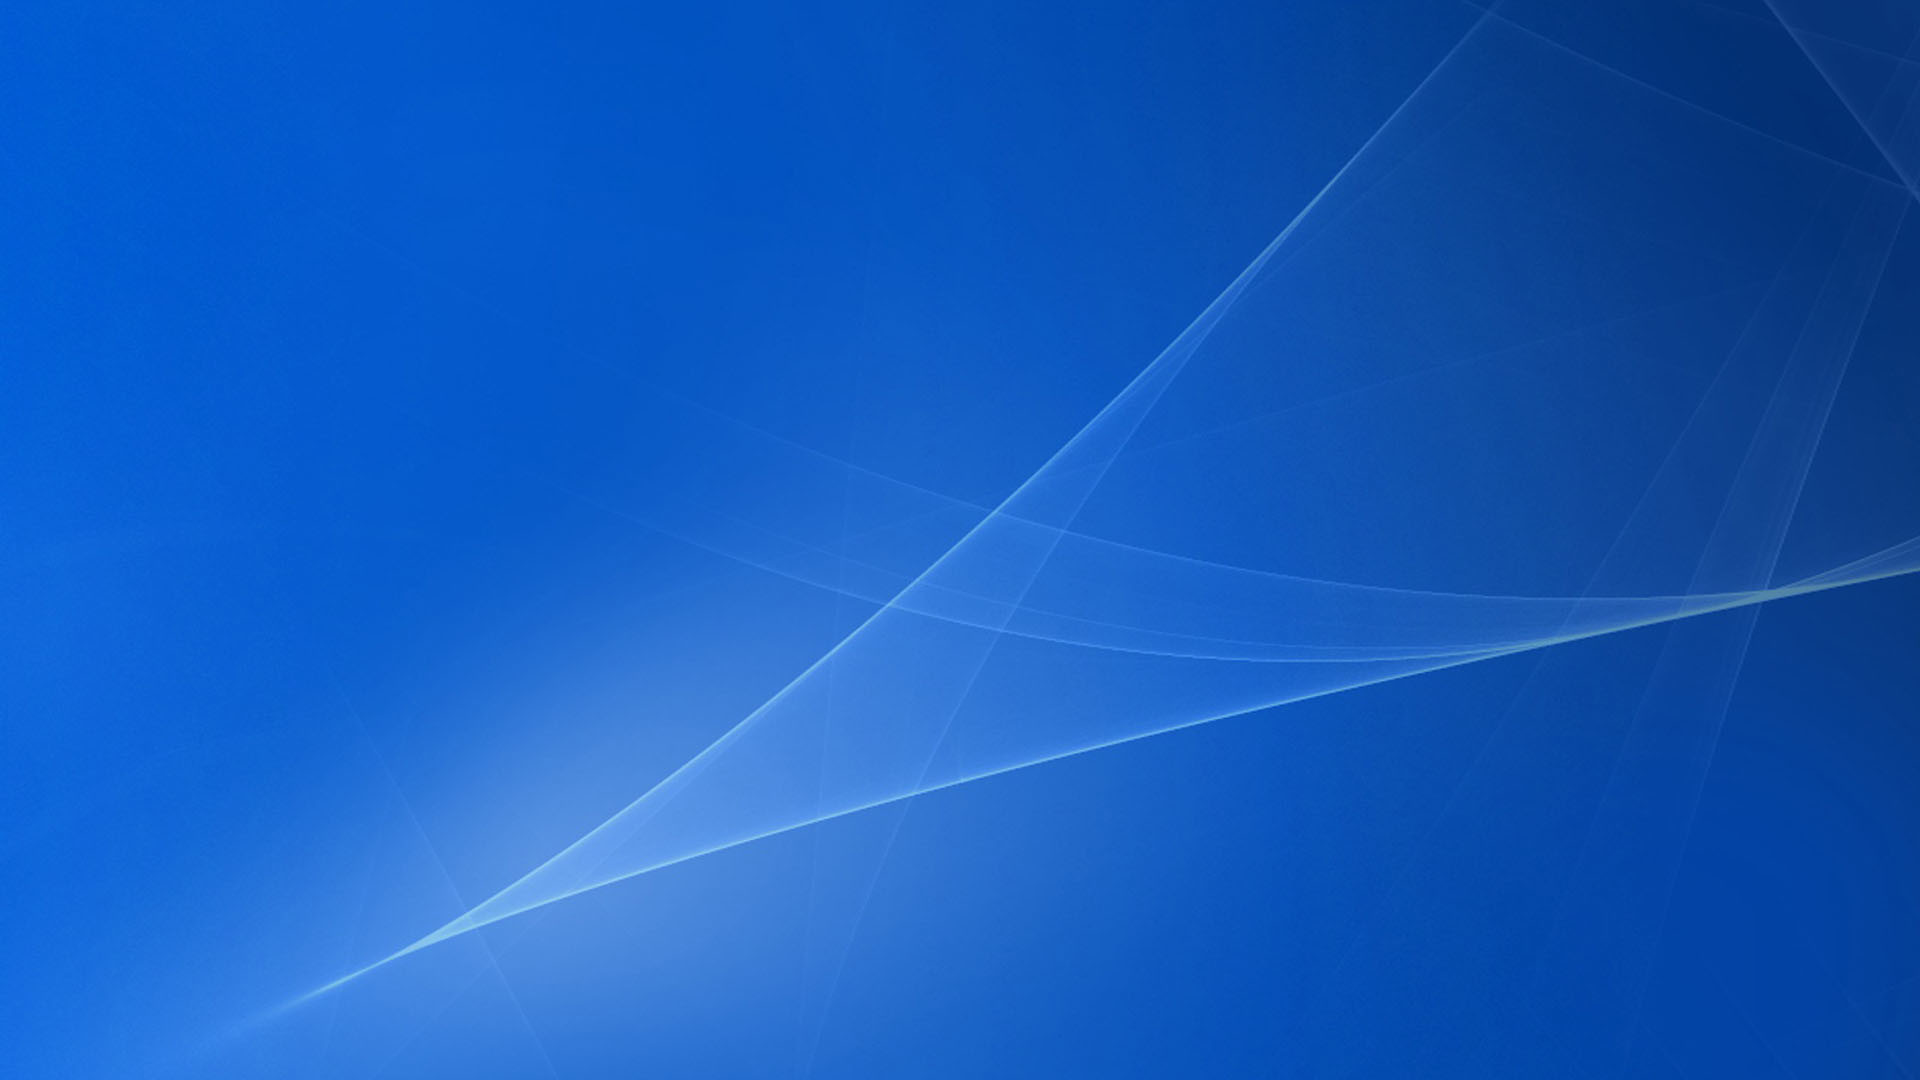 Blue Hd Wallpapers 1080P – 1577309